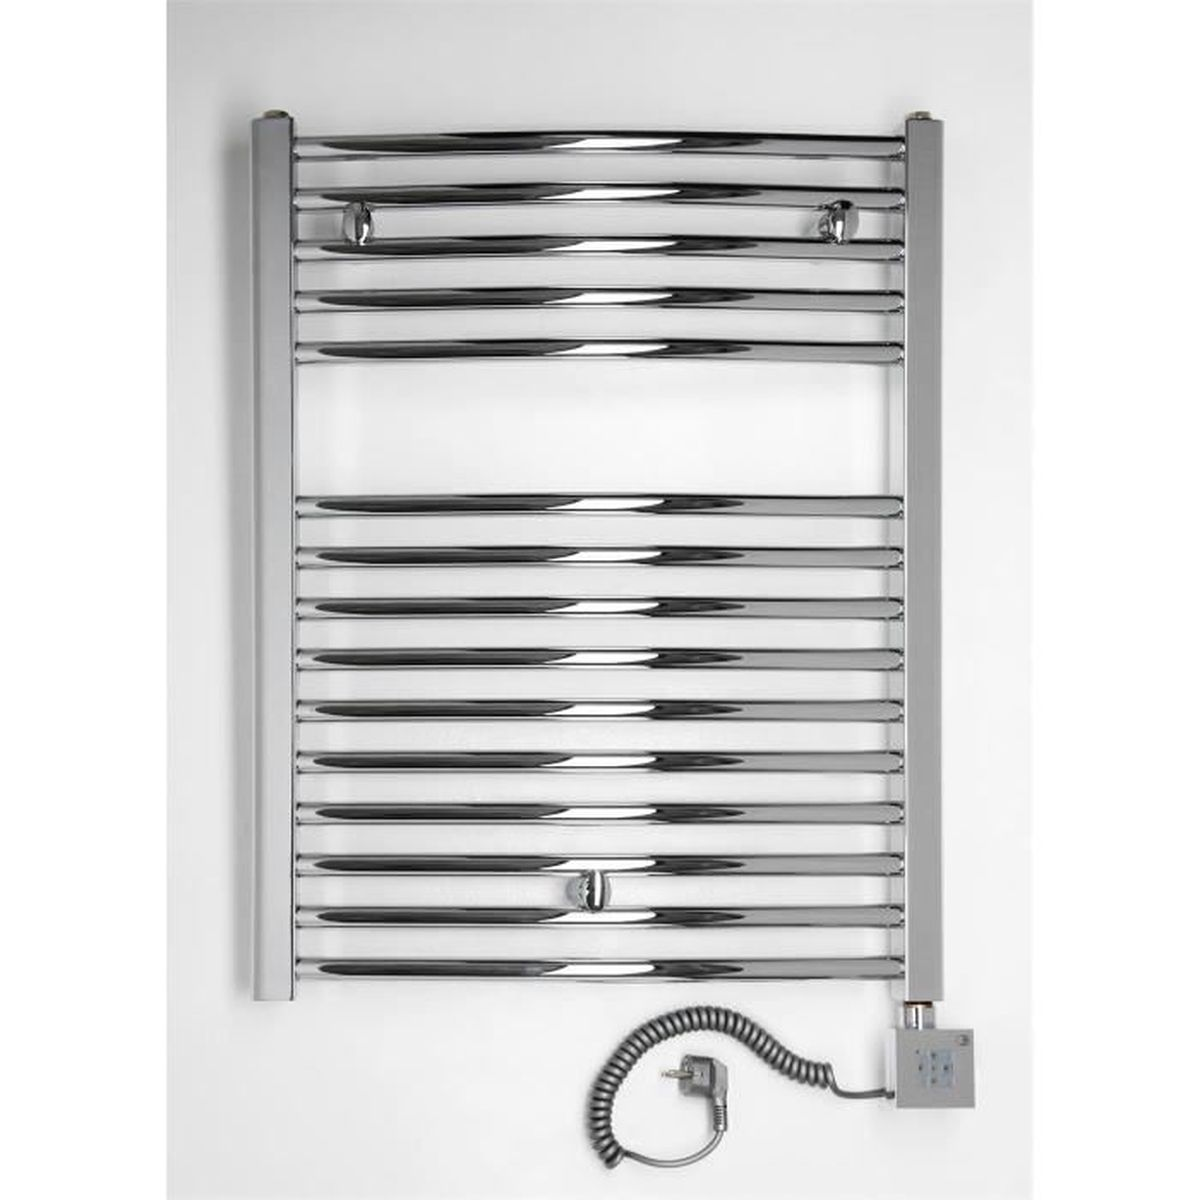 radiateur lectrique seche serviette chrom 600 watts barres courb es 775htx. Black Bedroom Furniture Sets. Home Design Ideas